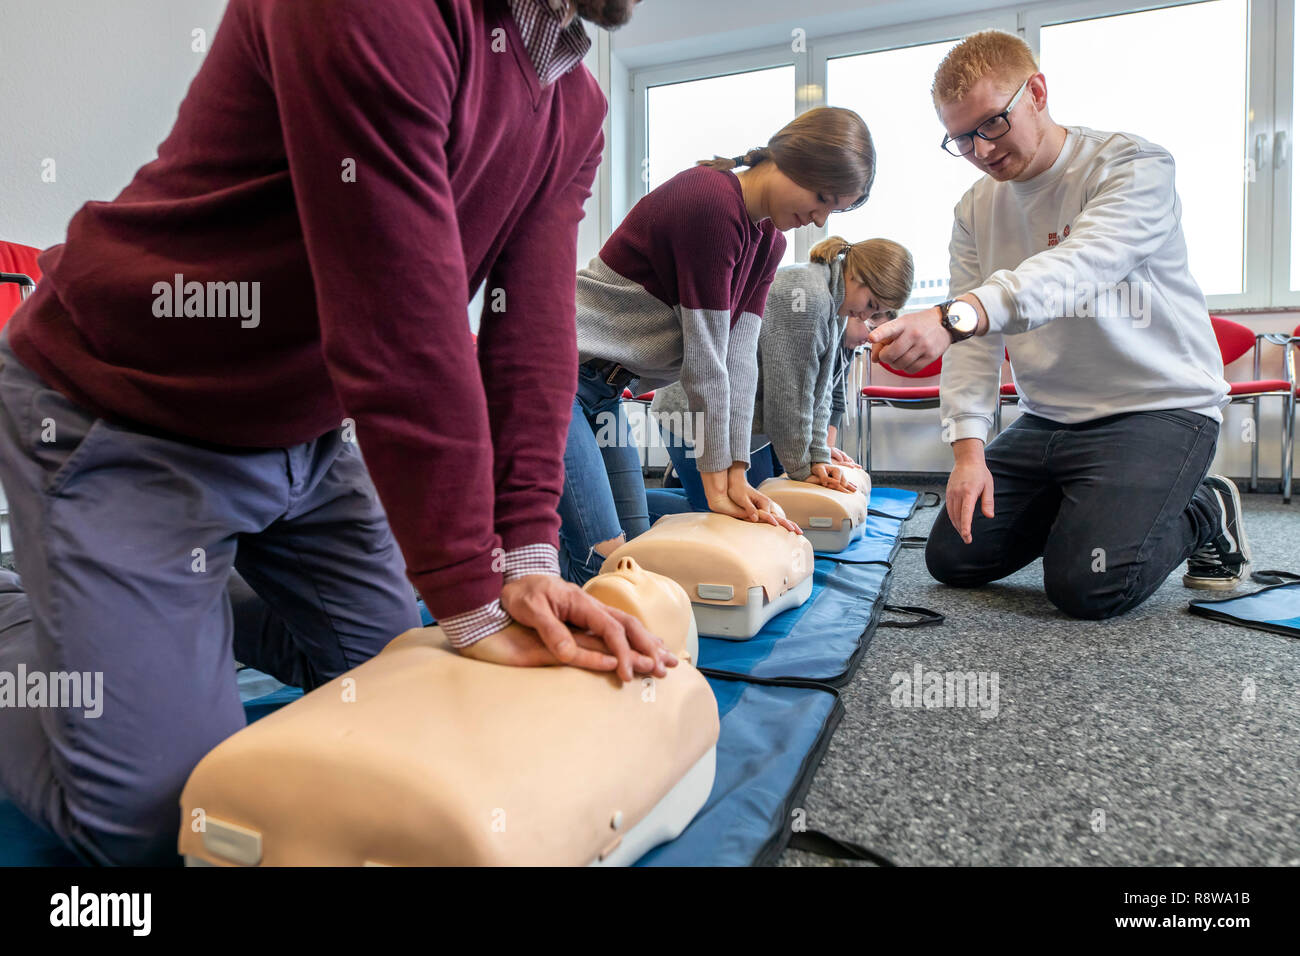 First aid course, first aid training in emergencies